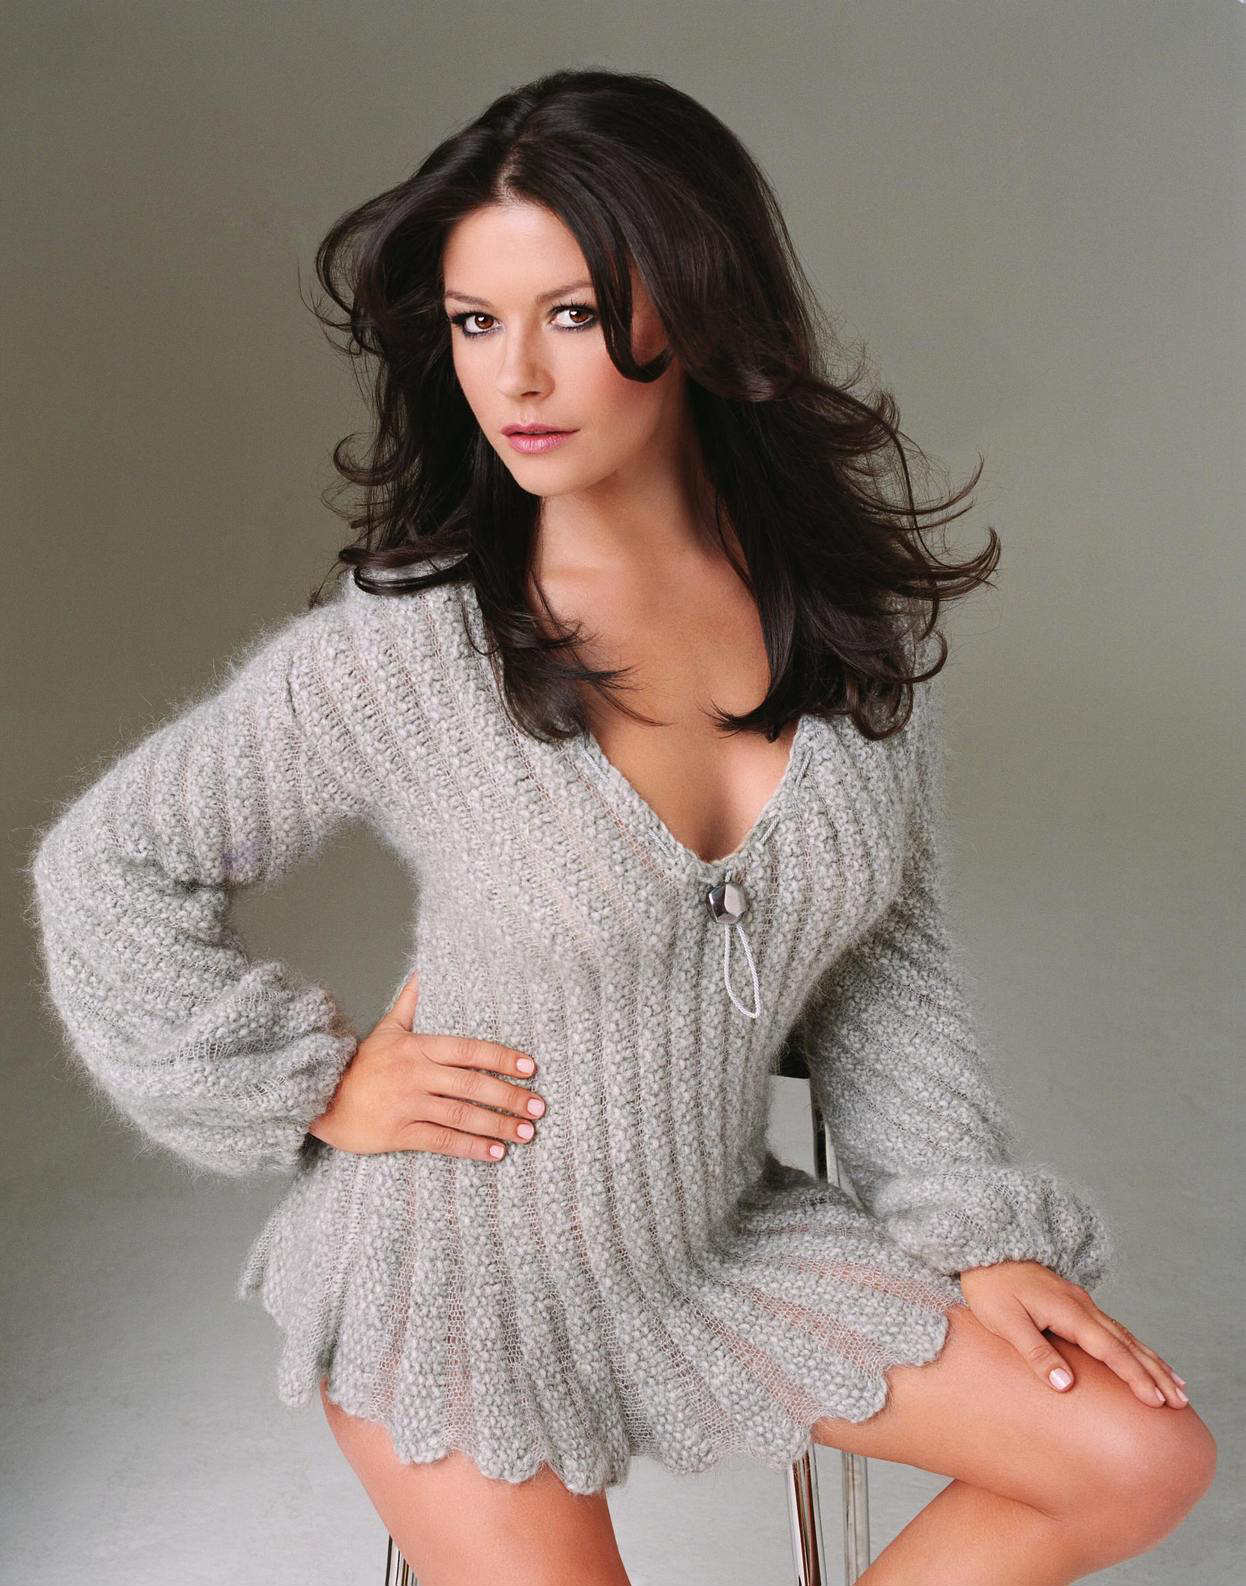 http://2.bp.blogspot.com/_V6cHkkbjFt8/TNYp0cRqMtI/AAAAAAAADUc/kn4X9ixYb2o/s1600/Catherine+Zeta+Jones+-+Ultimate+Pictures+Collection+%2811%29.jpg